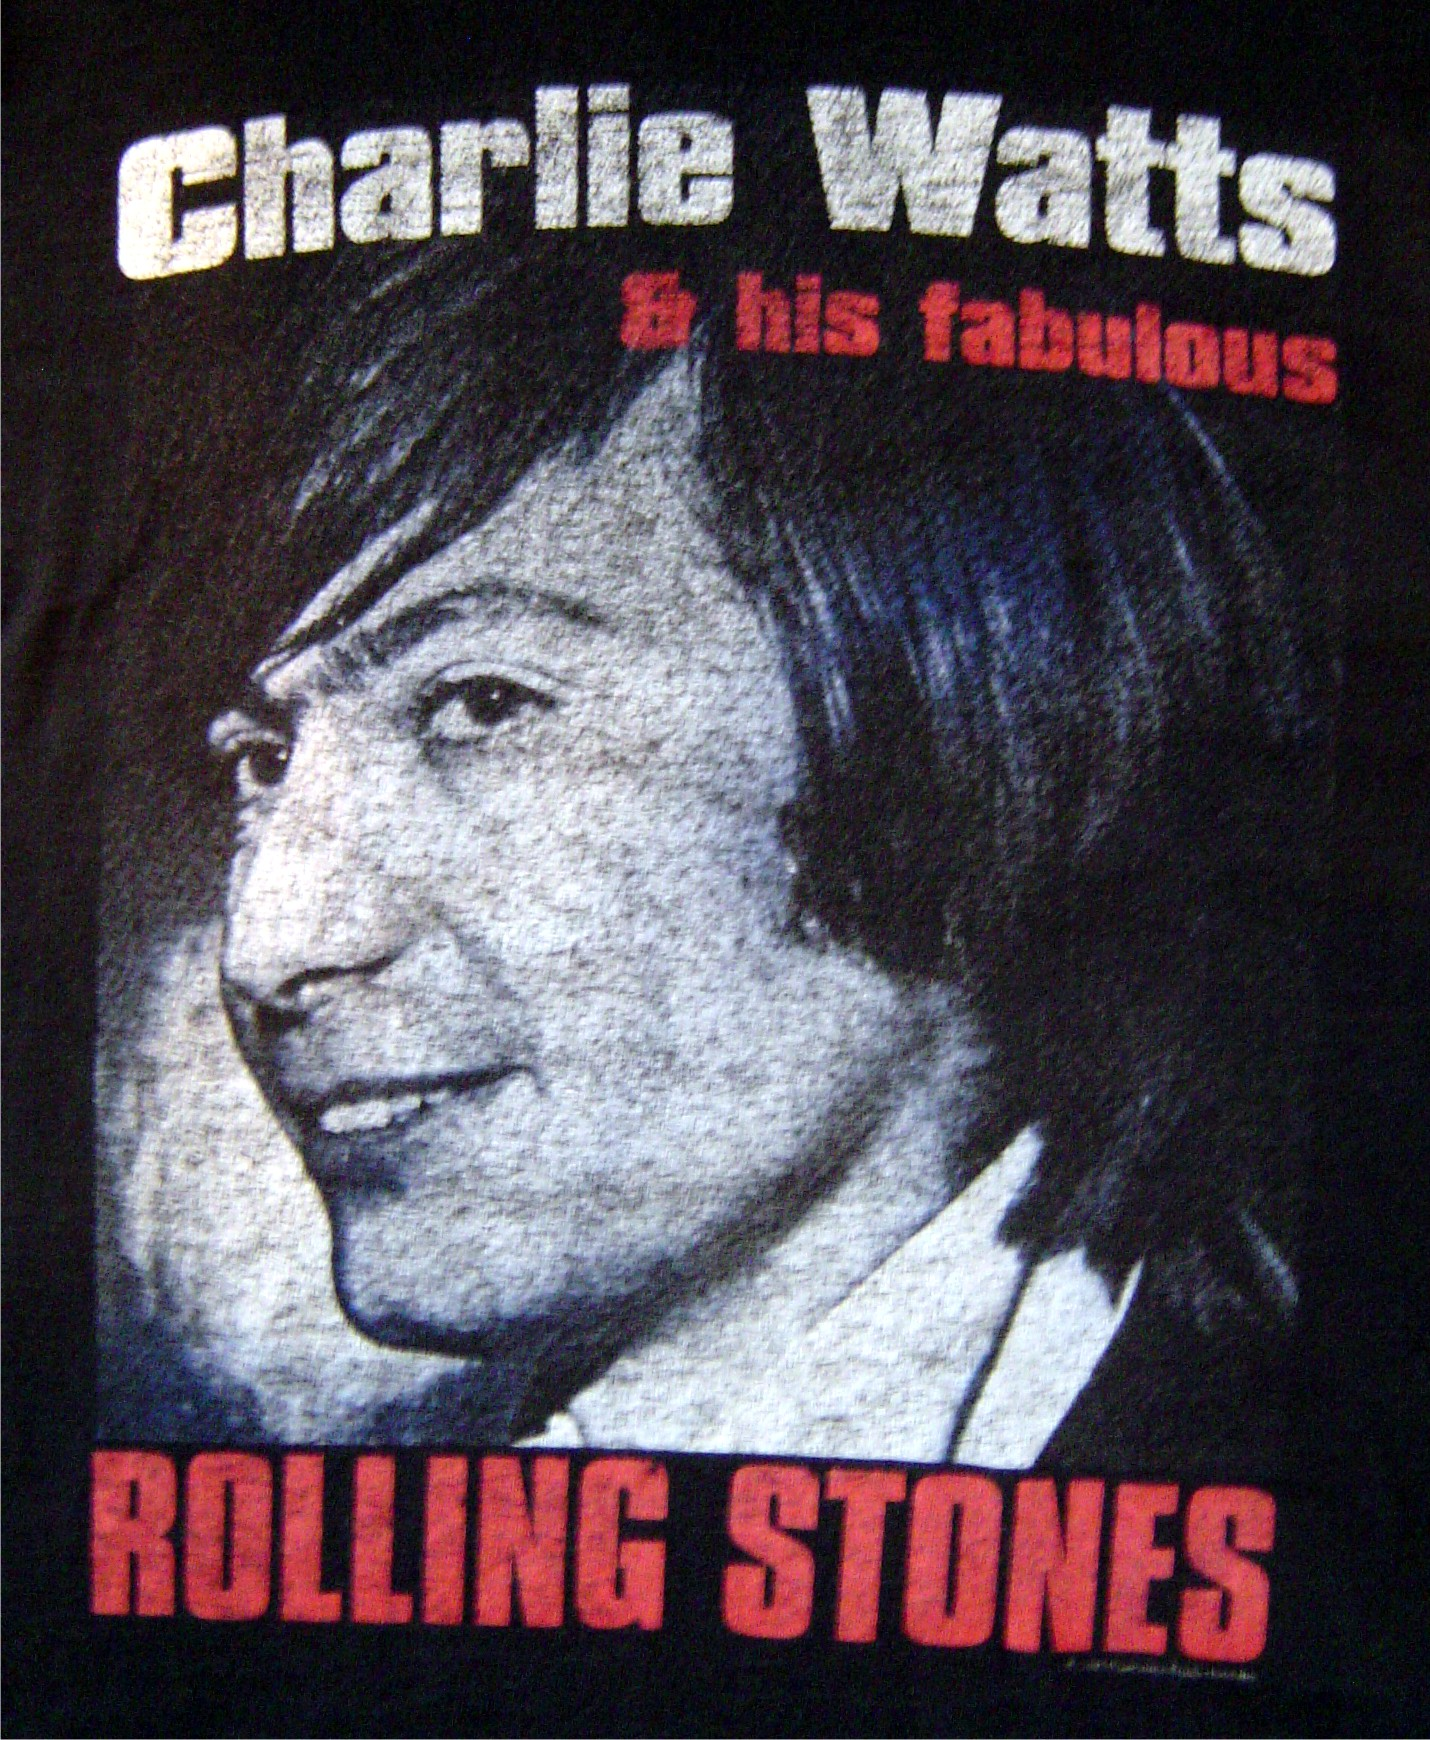 Charlie Watts and his Fabulous Rolling Stones